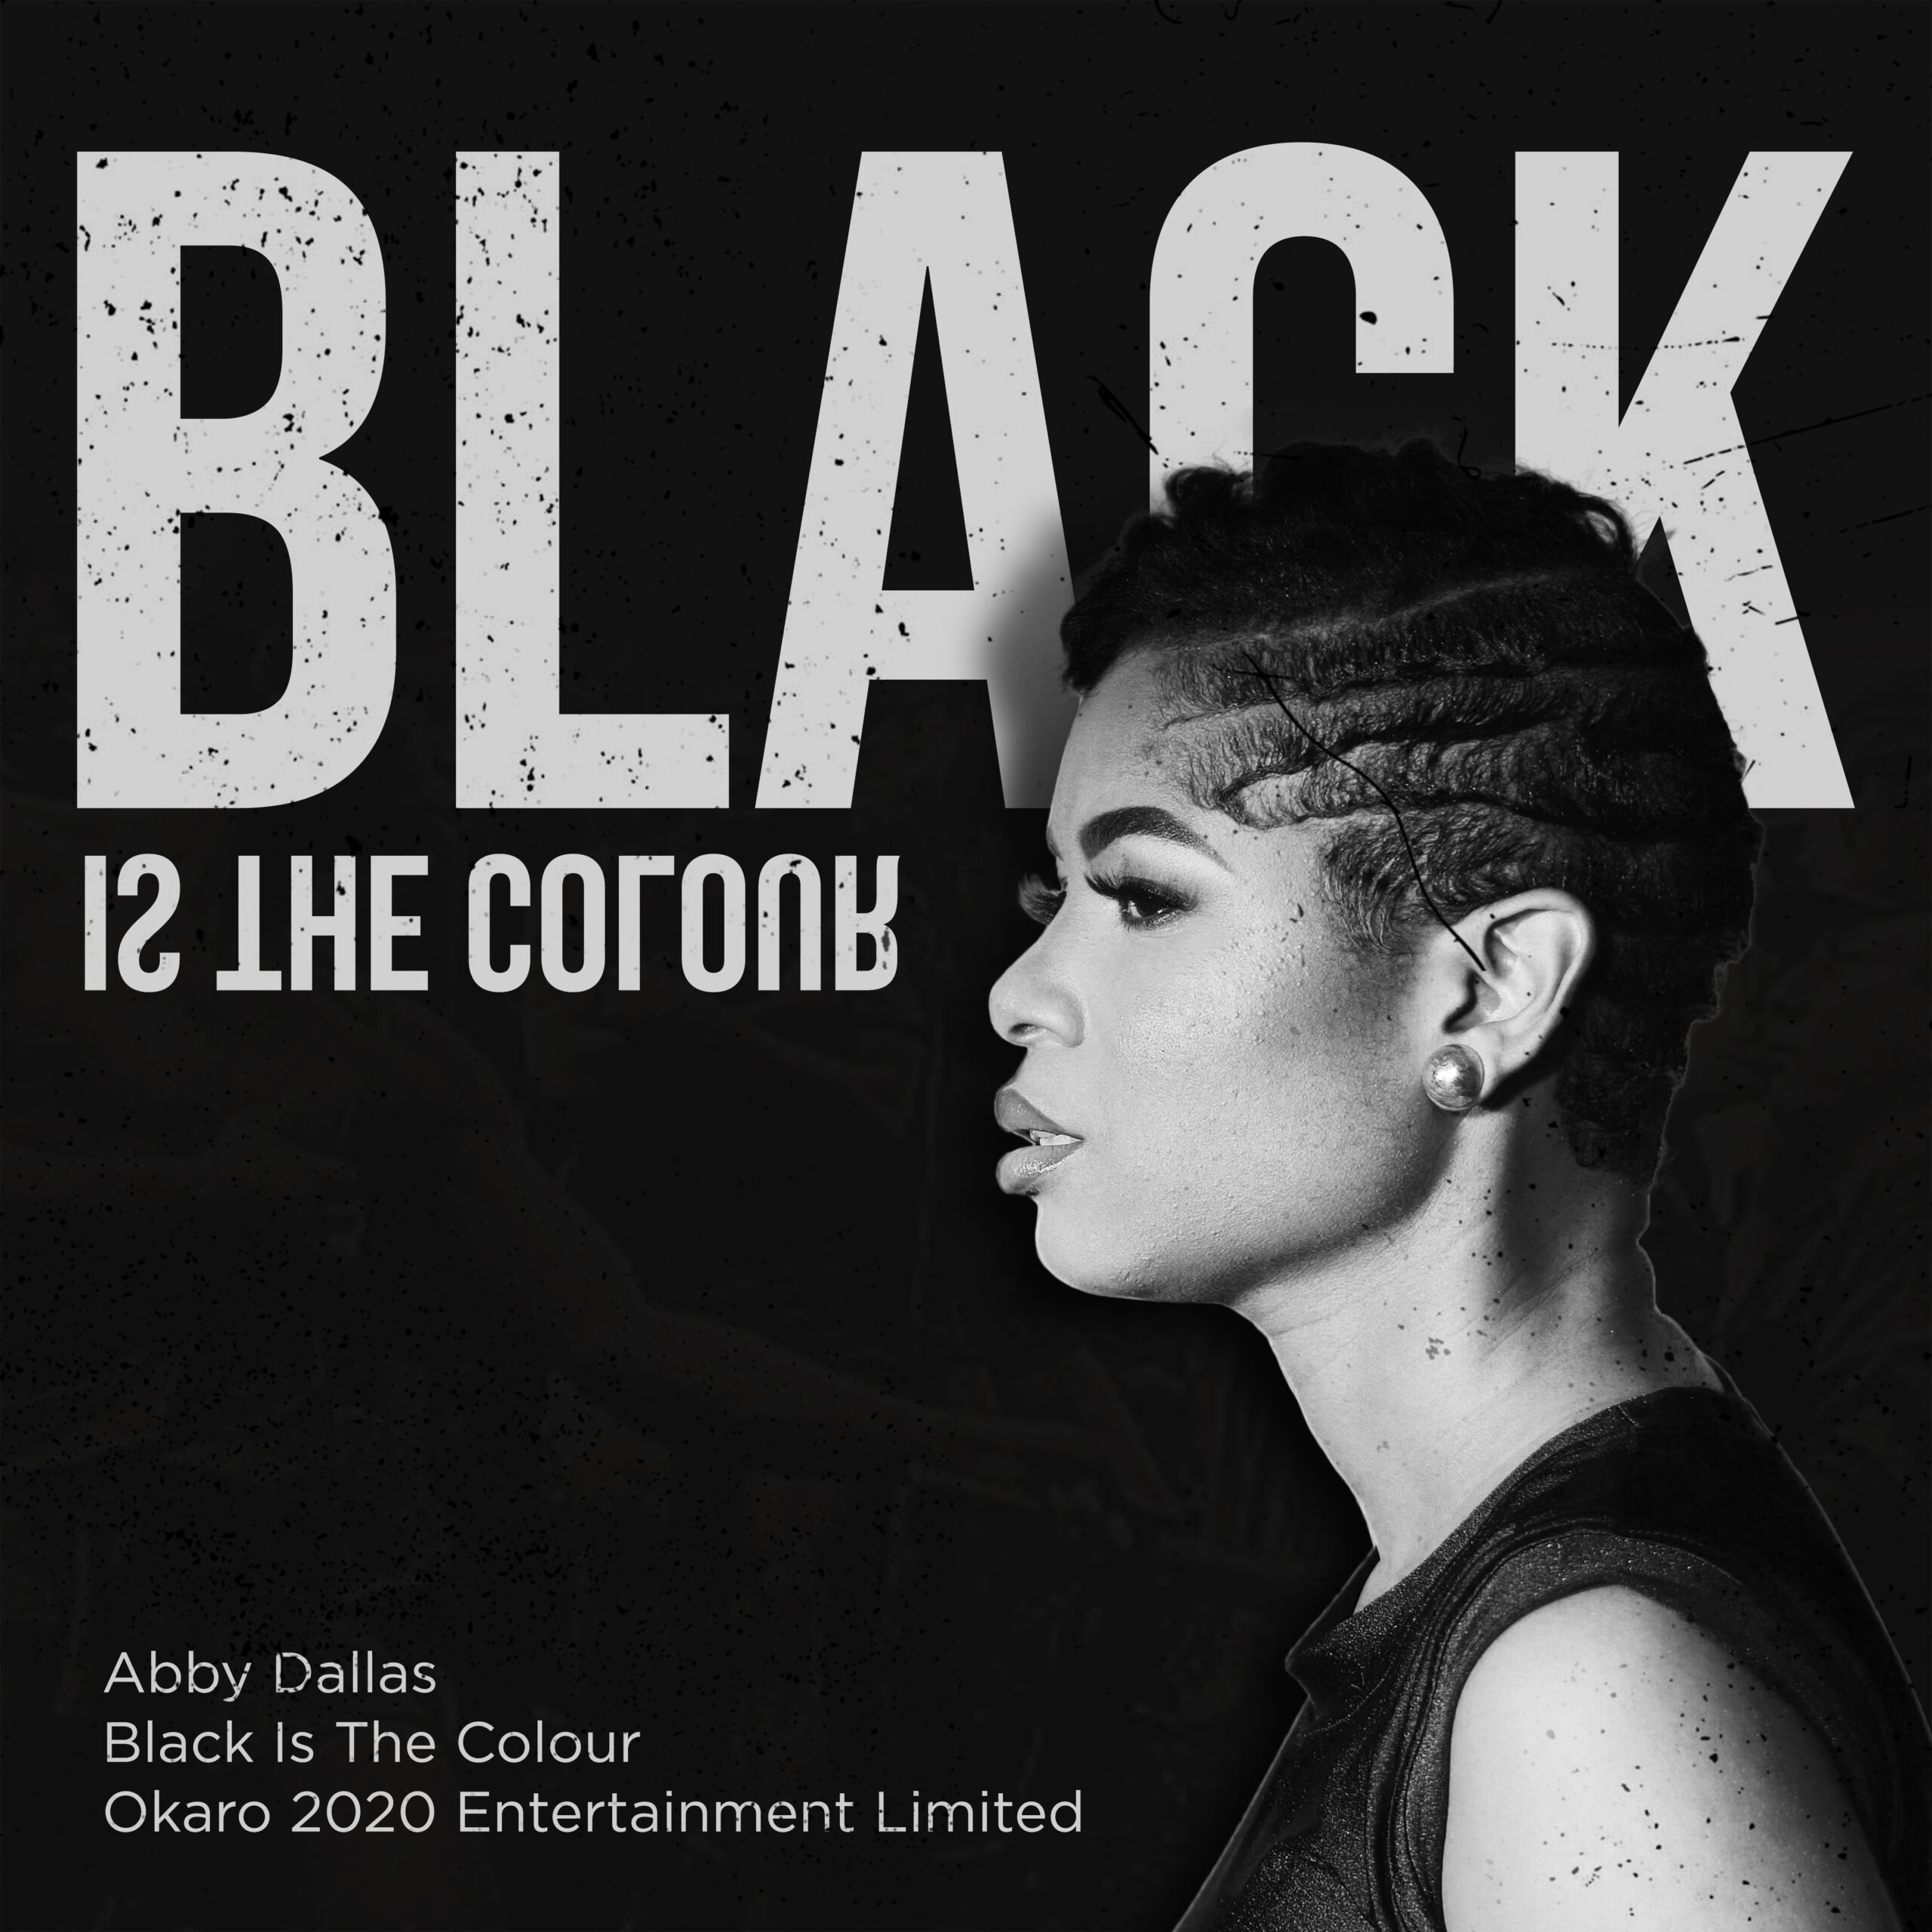 Reggae Artist Abby Dallas Drops New Song 'Black Is The Colour' With Powerful Visuals 6